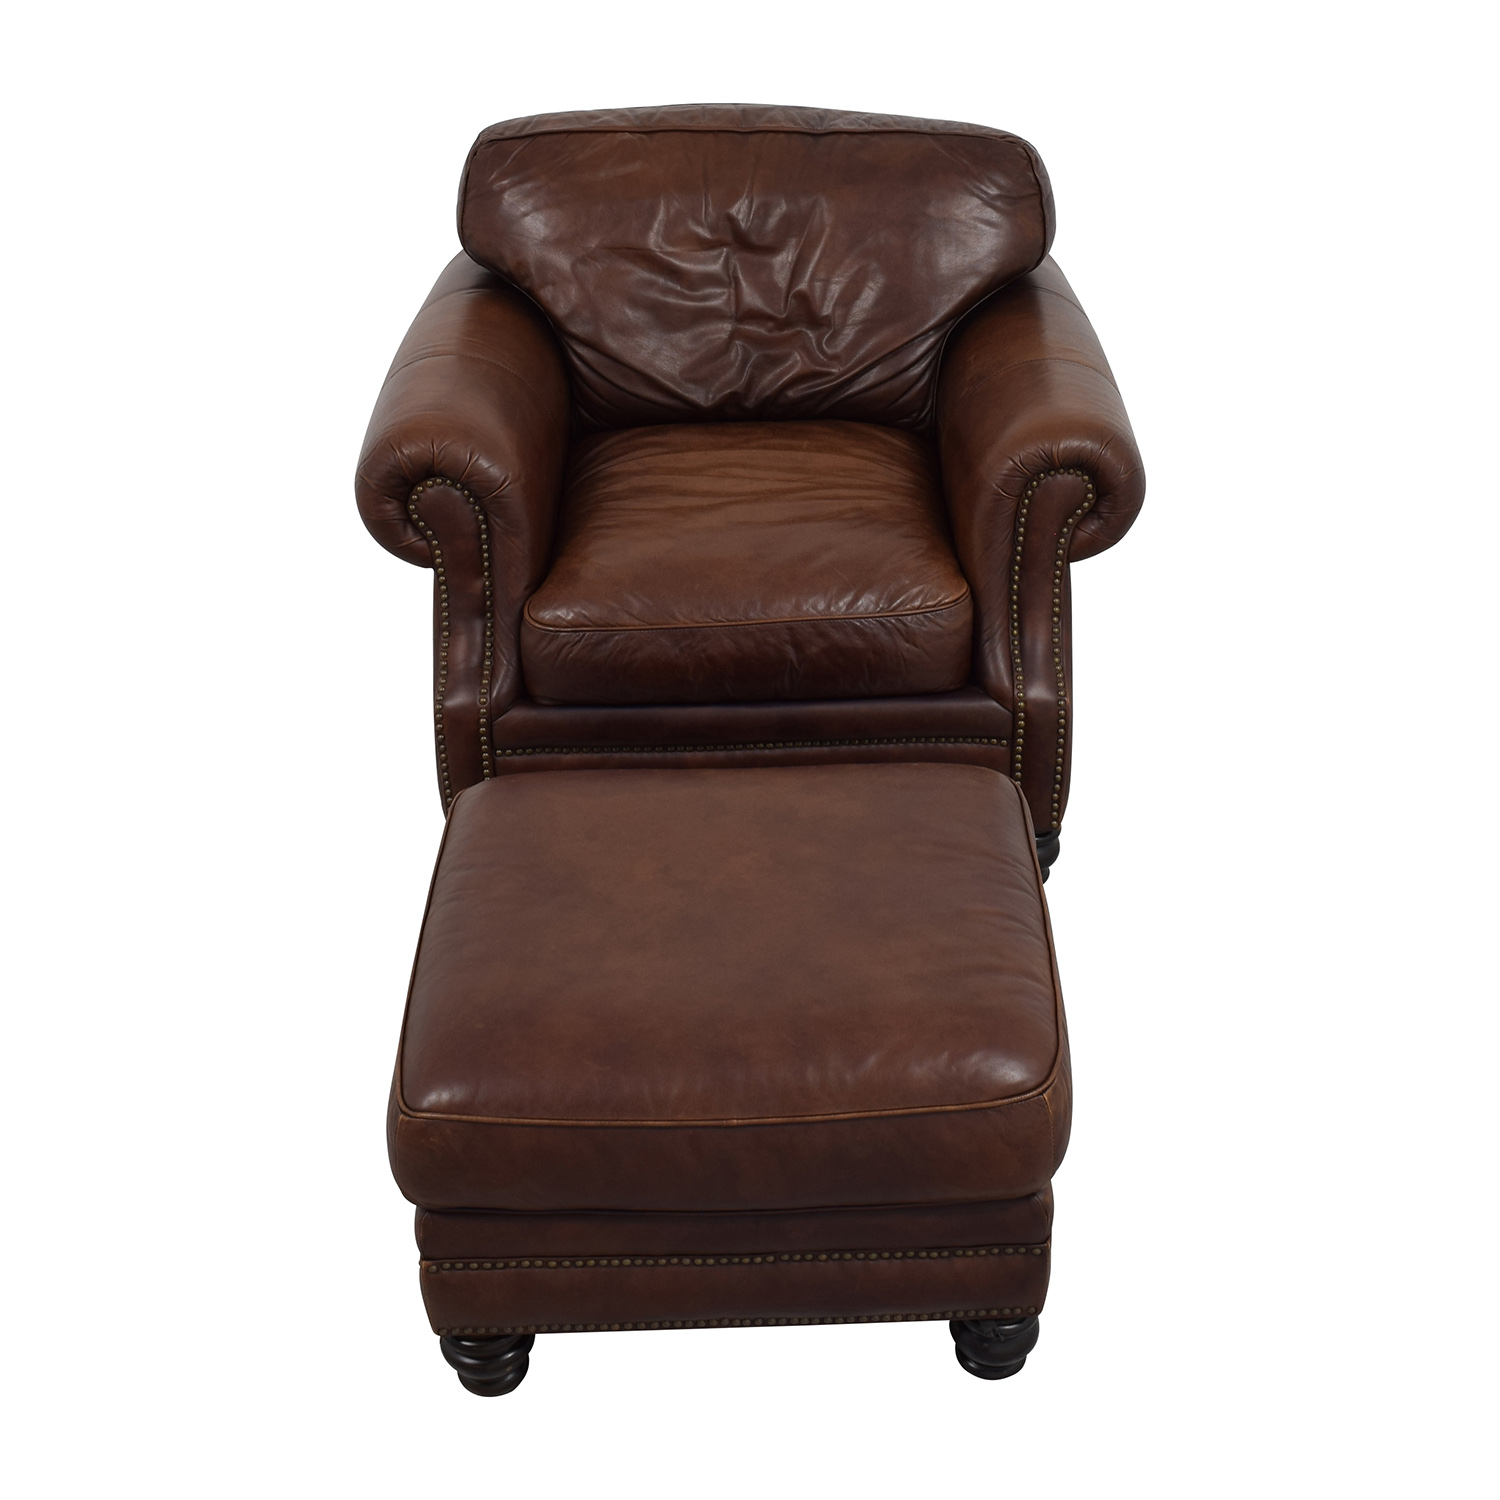 Attirant ... Brown Leather Studded Armchair With Matching Ottoman / Chairs ...